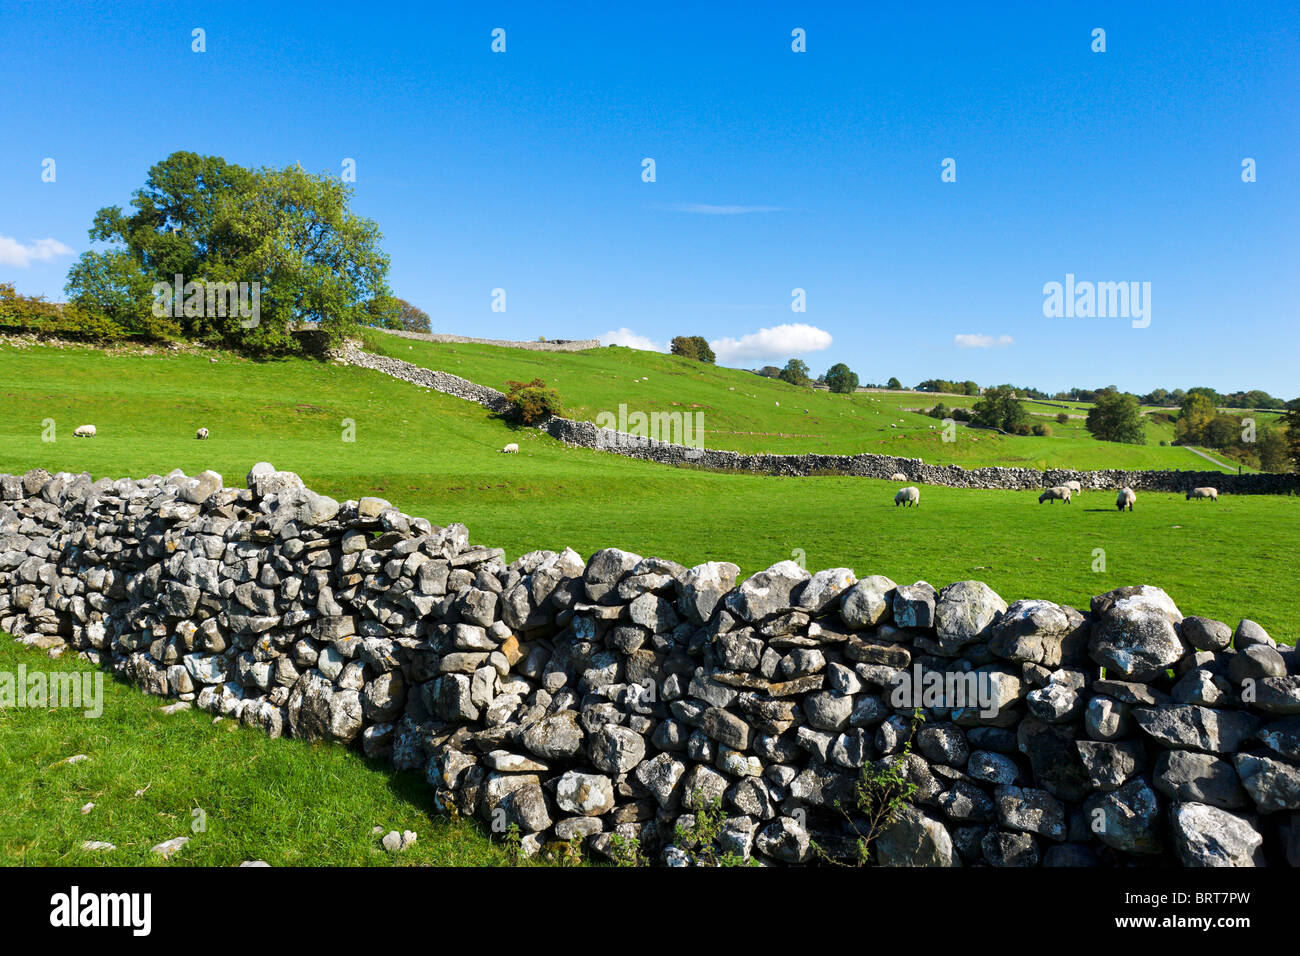 Dry stone wall in the countryside near Linton Falls, Grassington, Wharfedale, Yorkshire Dales National Park, England, - Stock Image